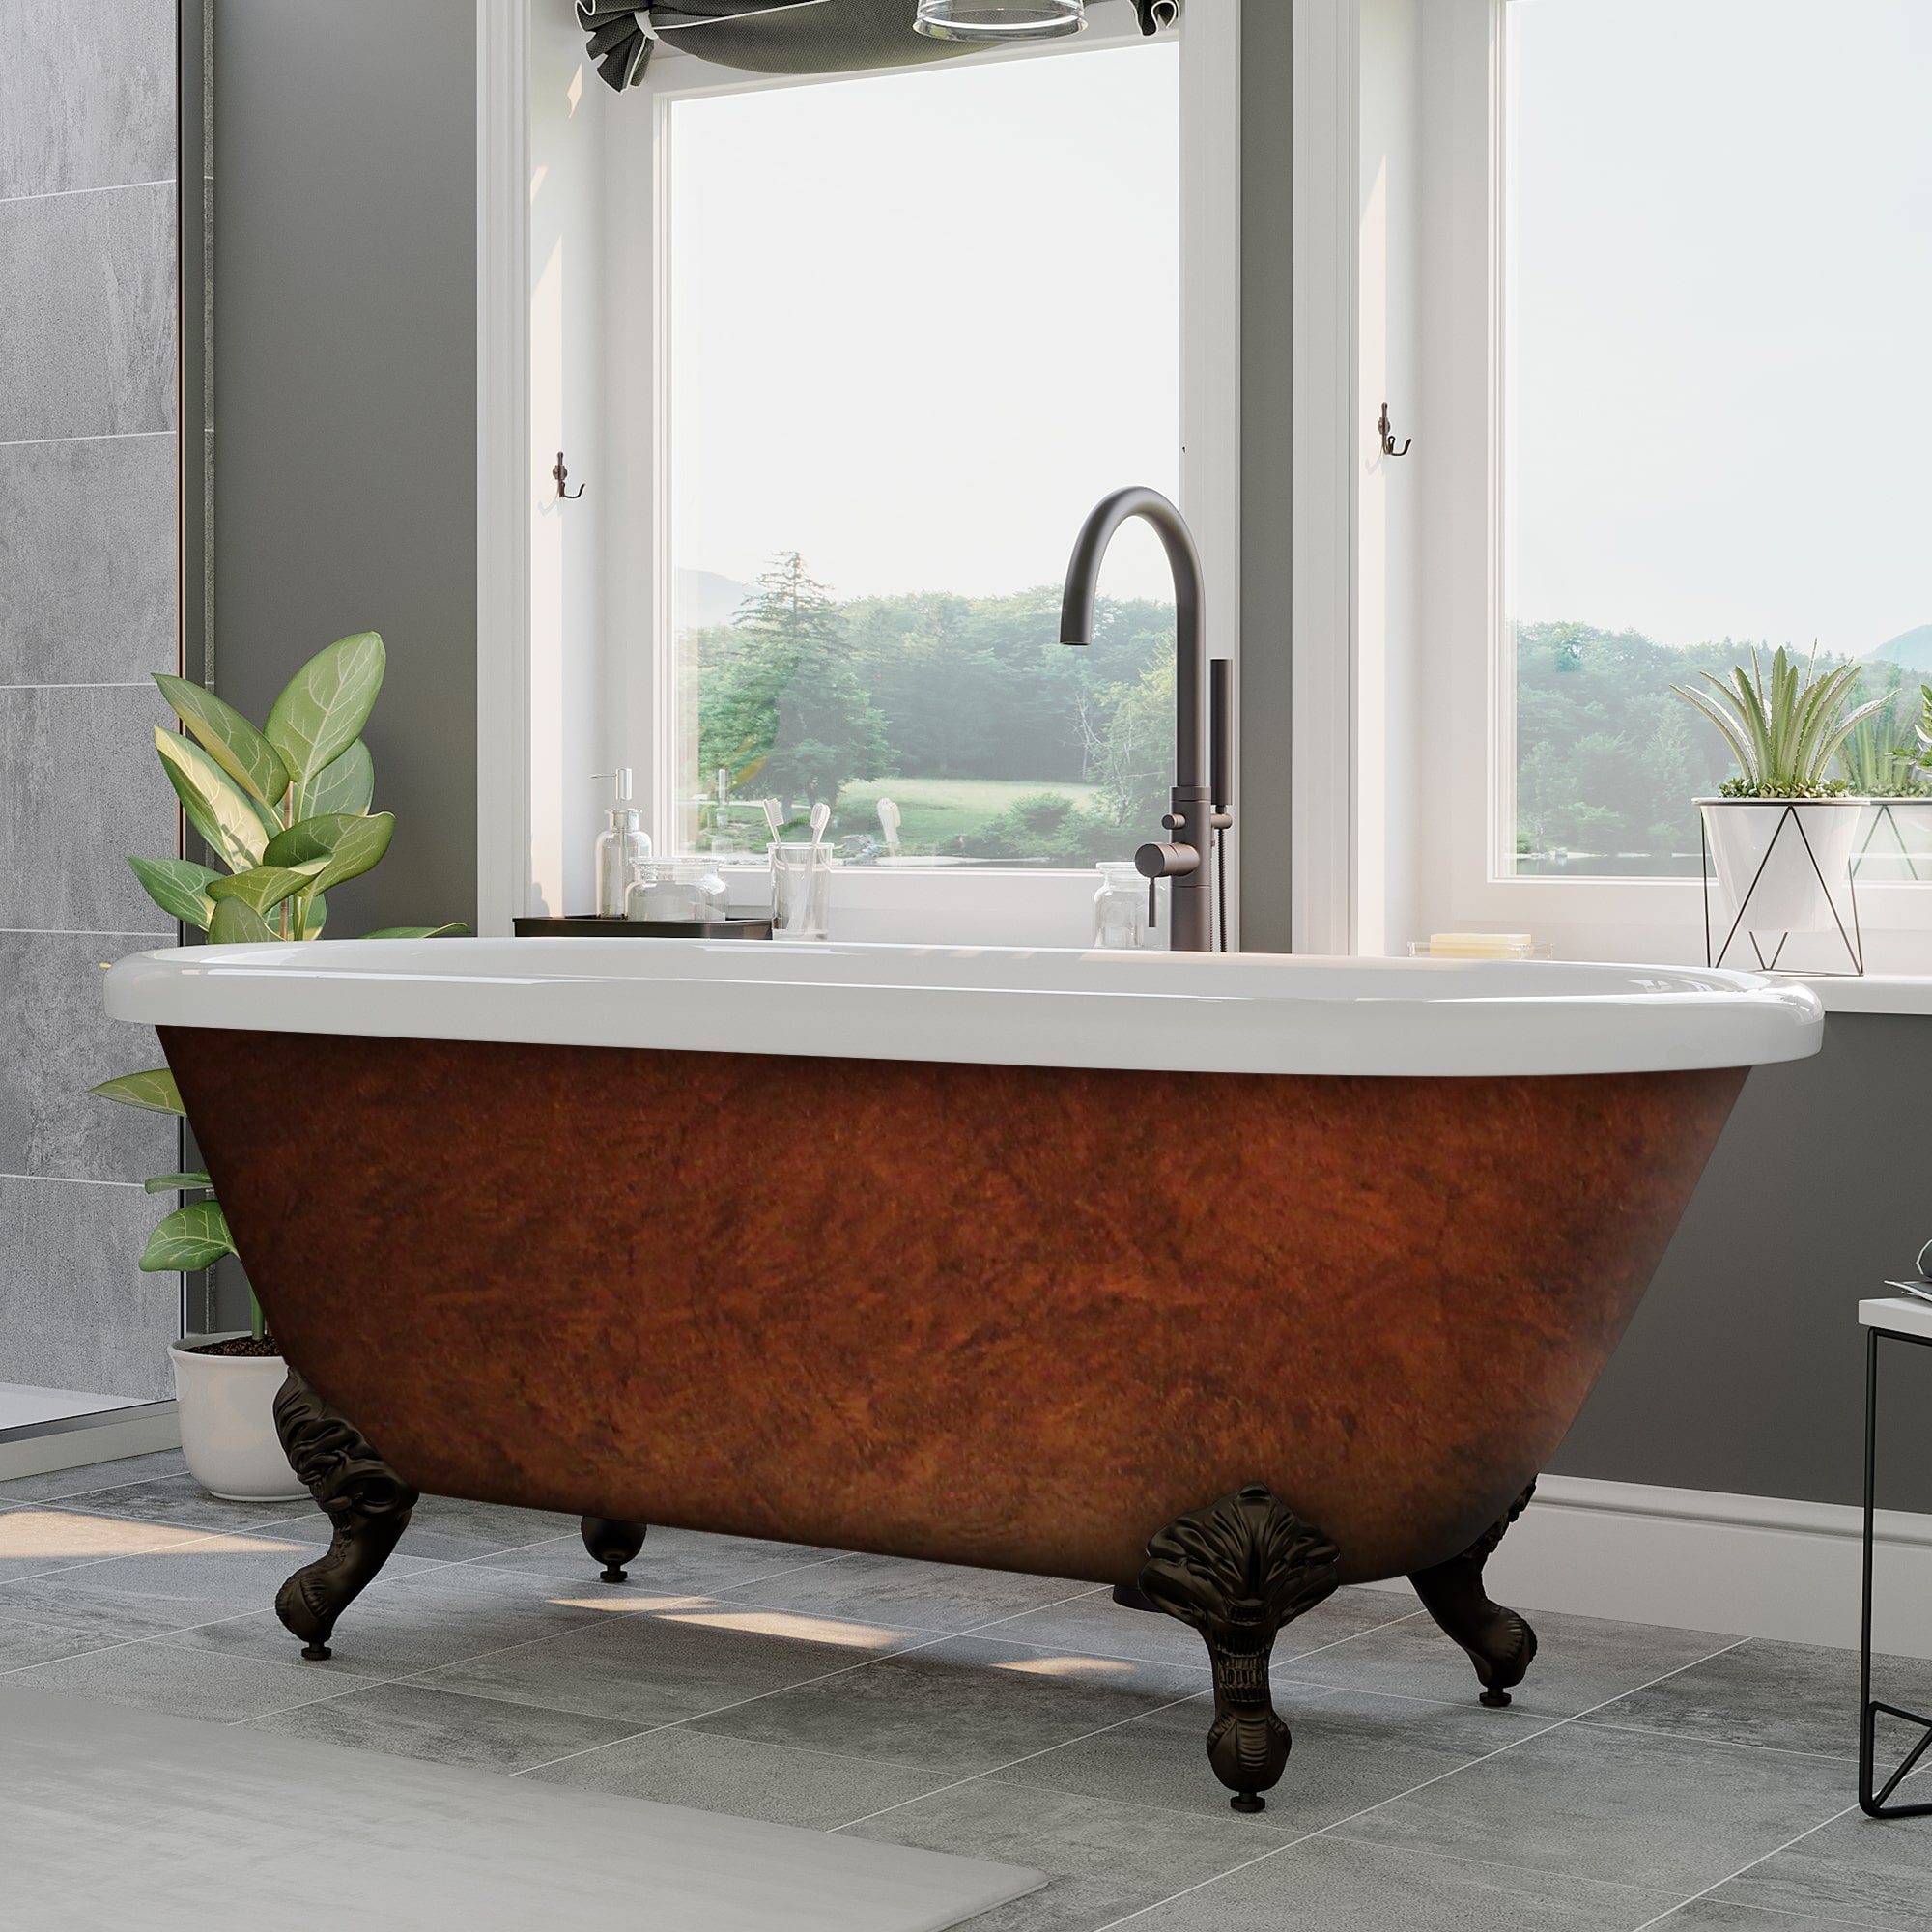 Acrylic Double Ended Clawfoot Tub No Faucet Holes Copper Bronze